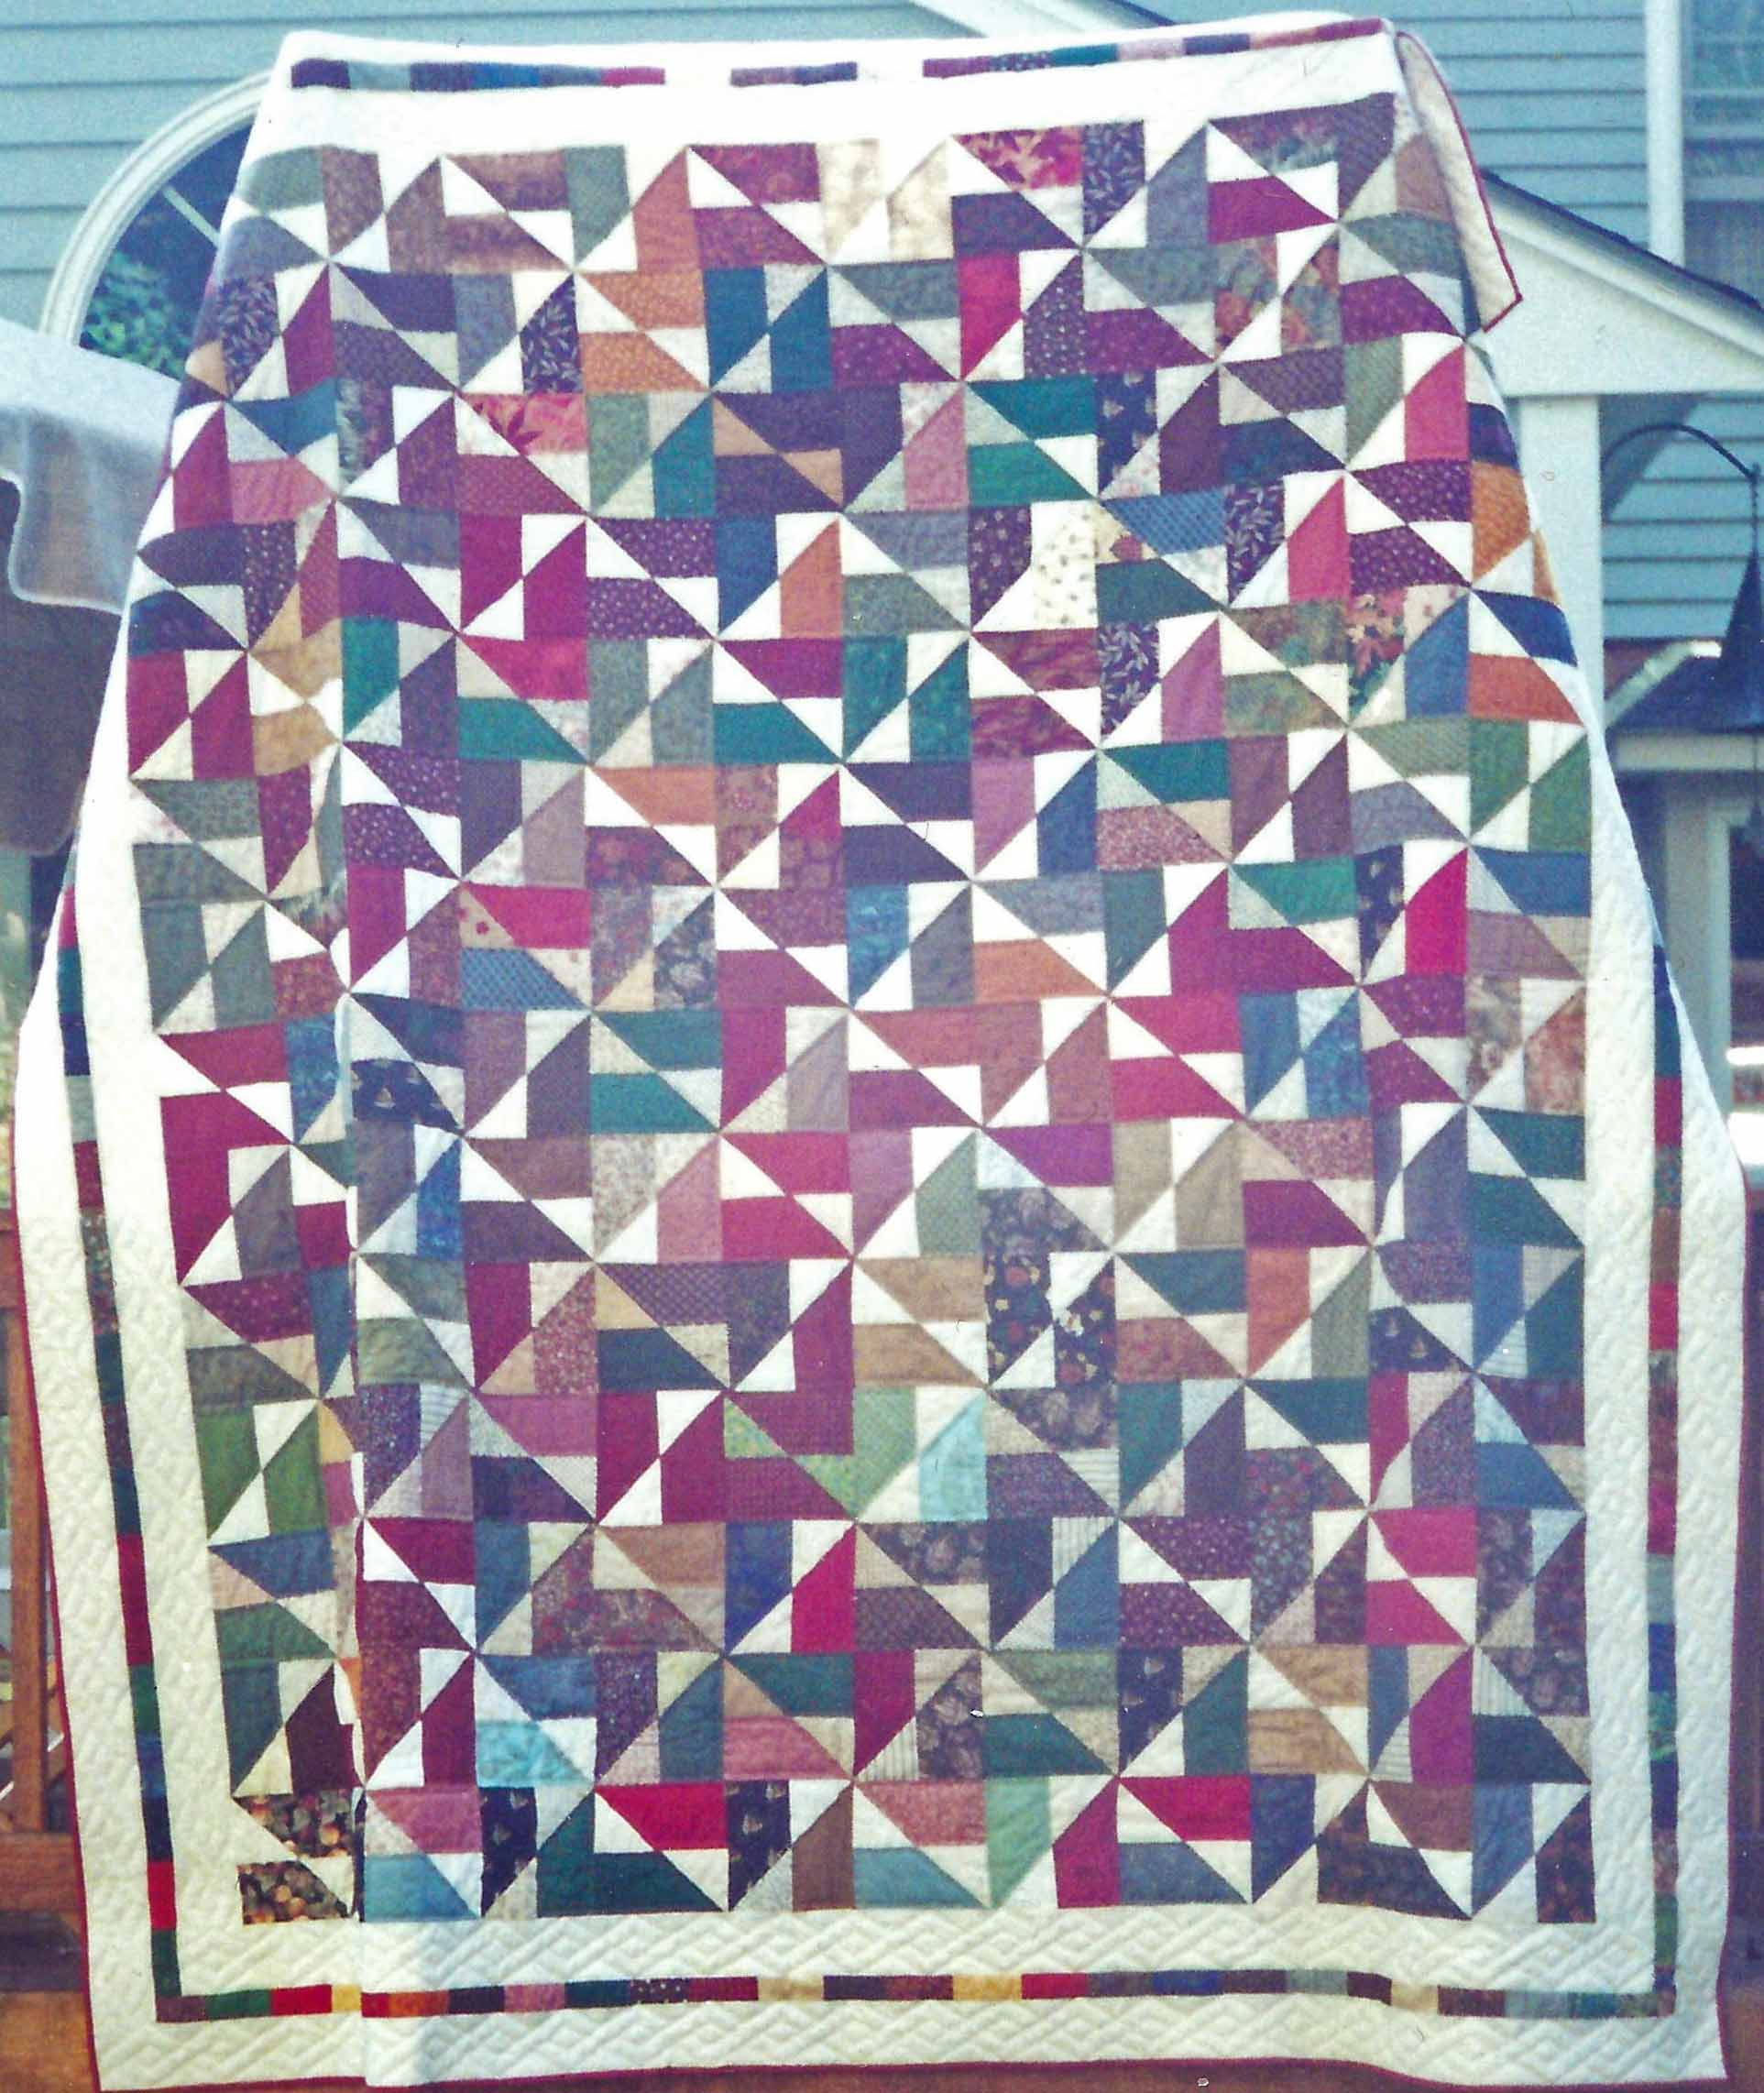 pin at on patchwork chic floral bohemian boho wayfair quilts set by bedding collection frazier b dada found it quilt smith hippie cotton elegance